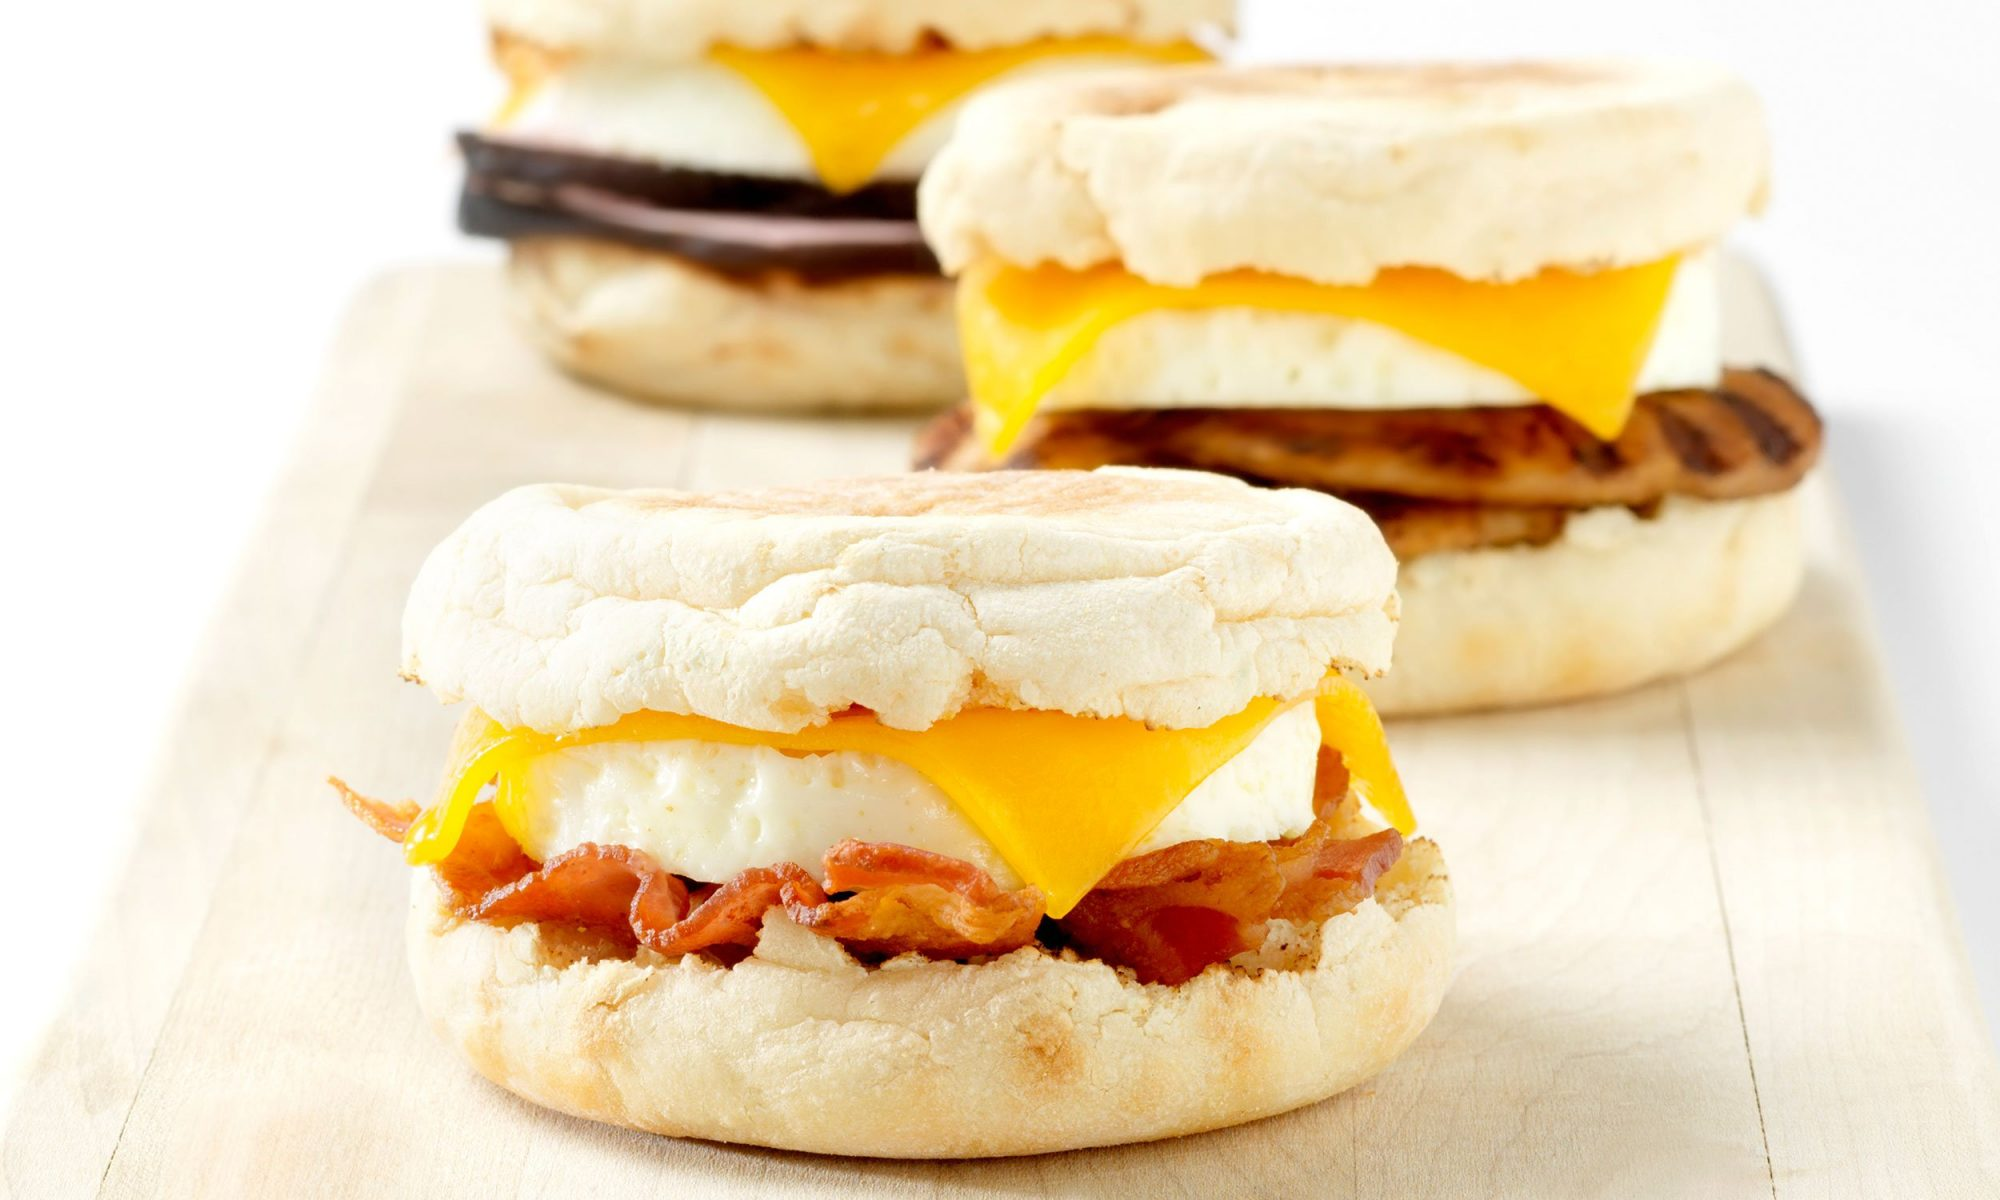 DIY Microwave Egg Sandwiches Will Save You Time and Money